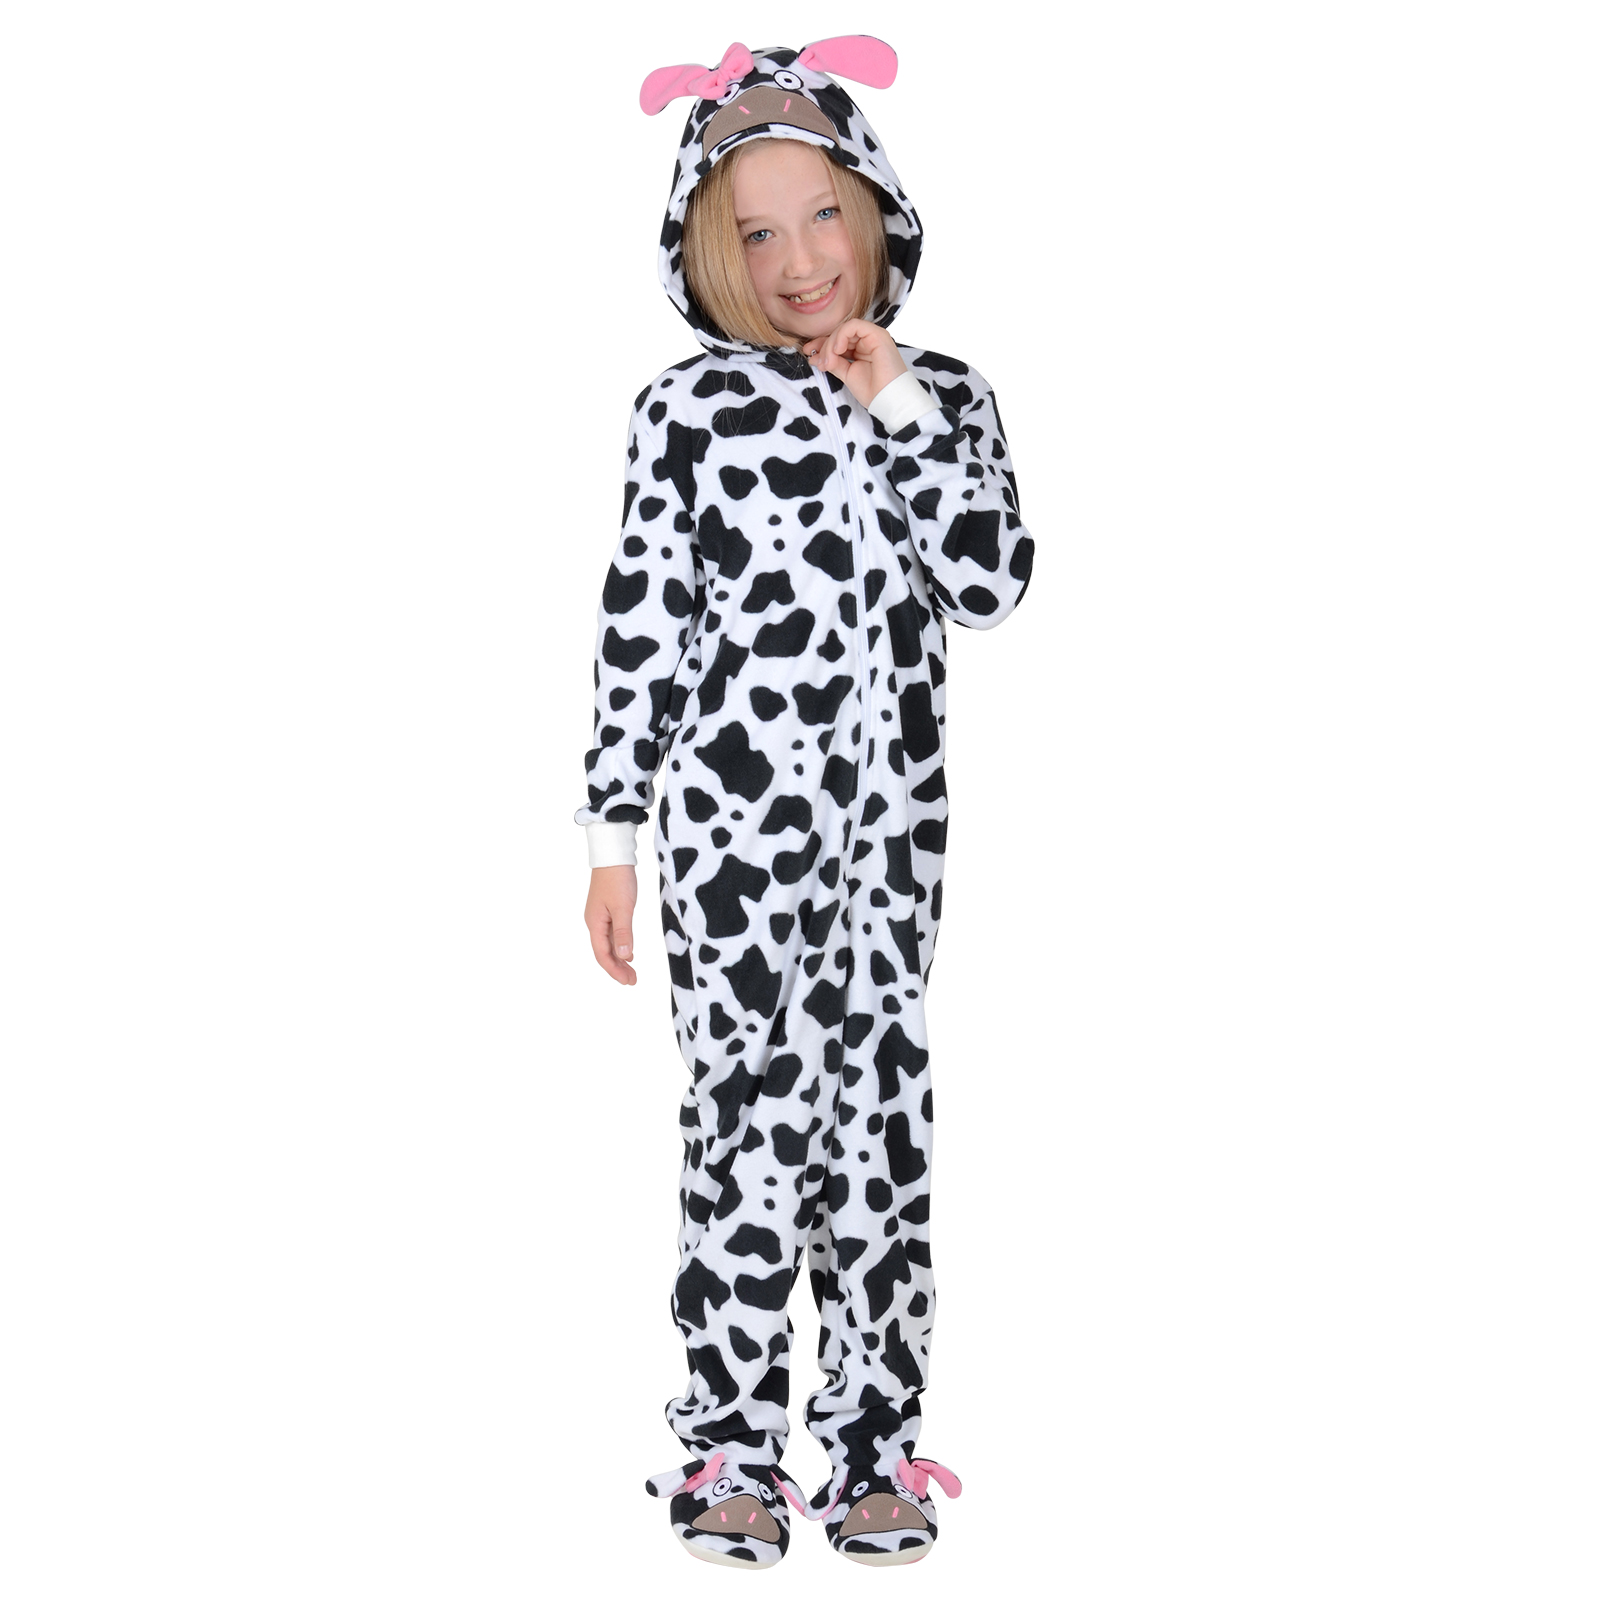 Whether you want to buy animal onesies for adults or for kids, there is no question about having or not having the hood. An animal onesie gets its appeal like an animal only if the hood is designed according to the head of a particular animal.